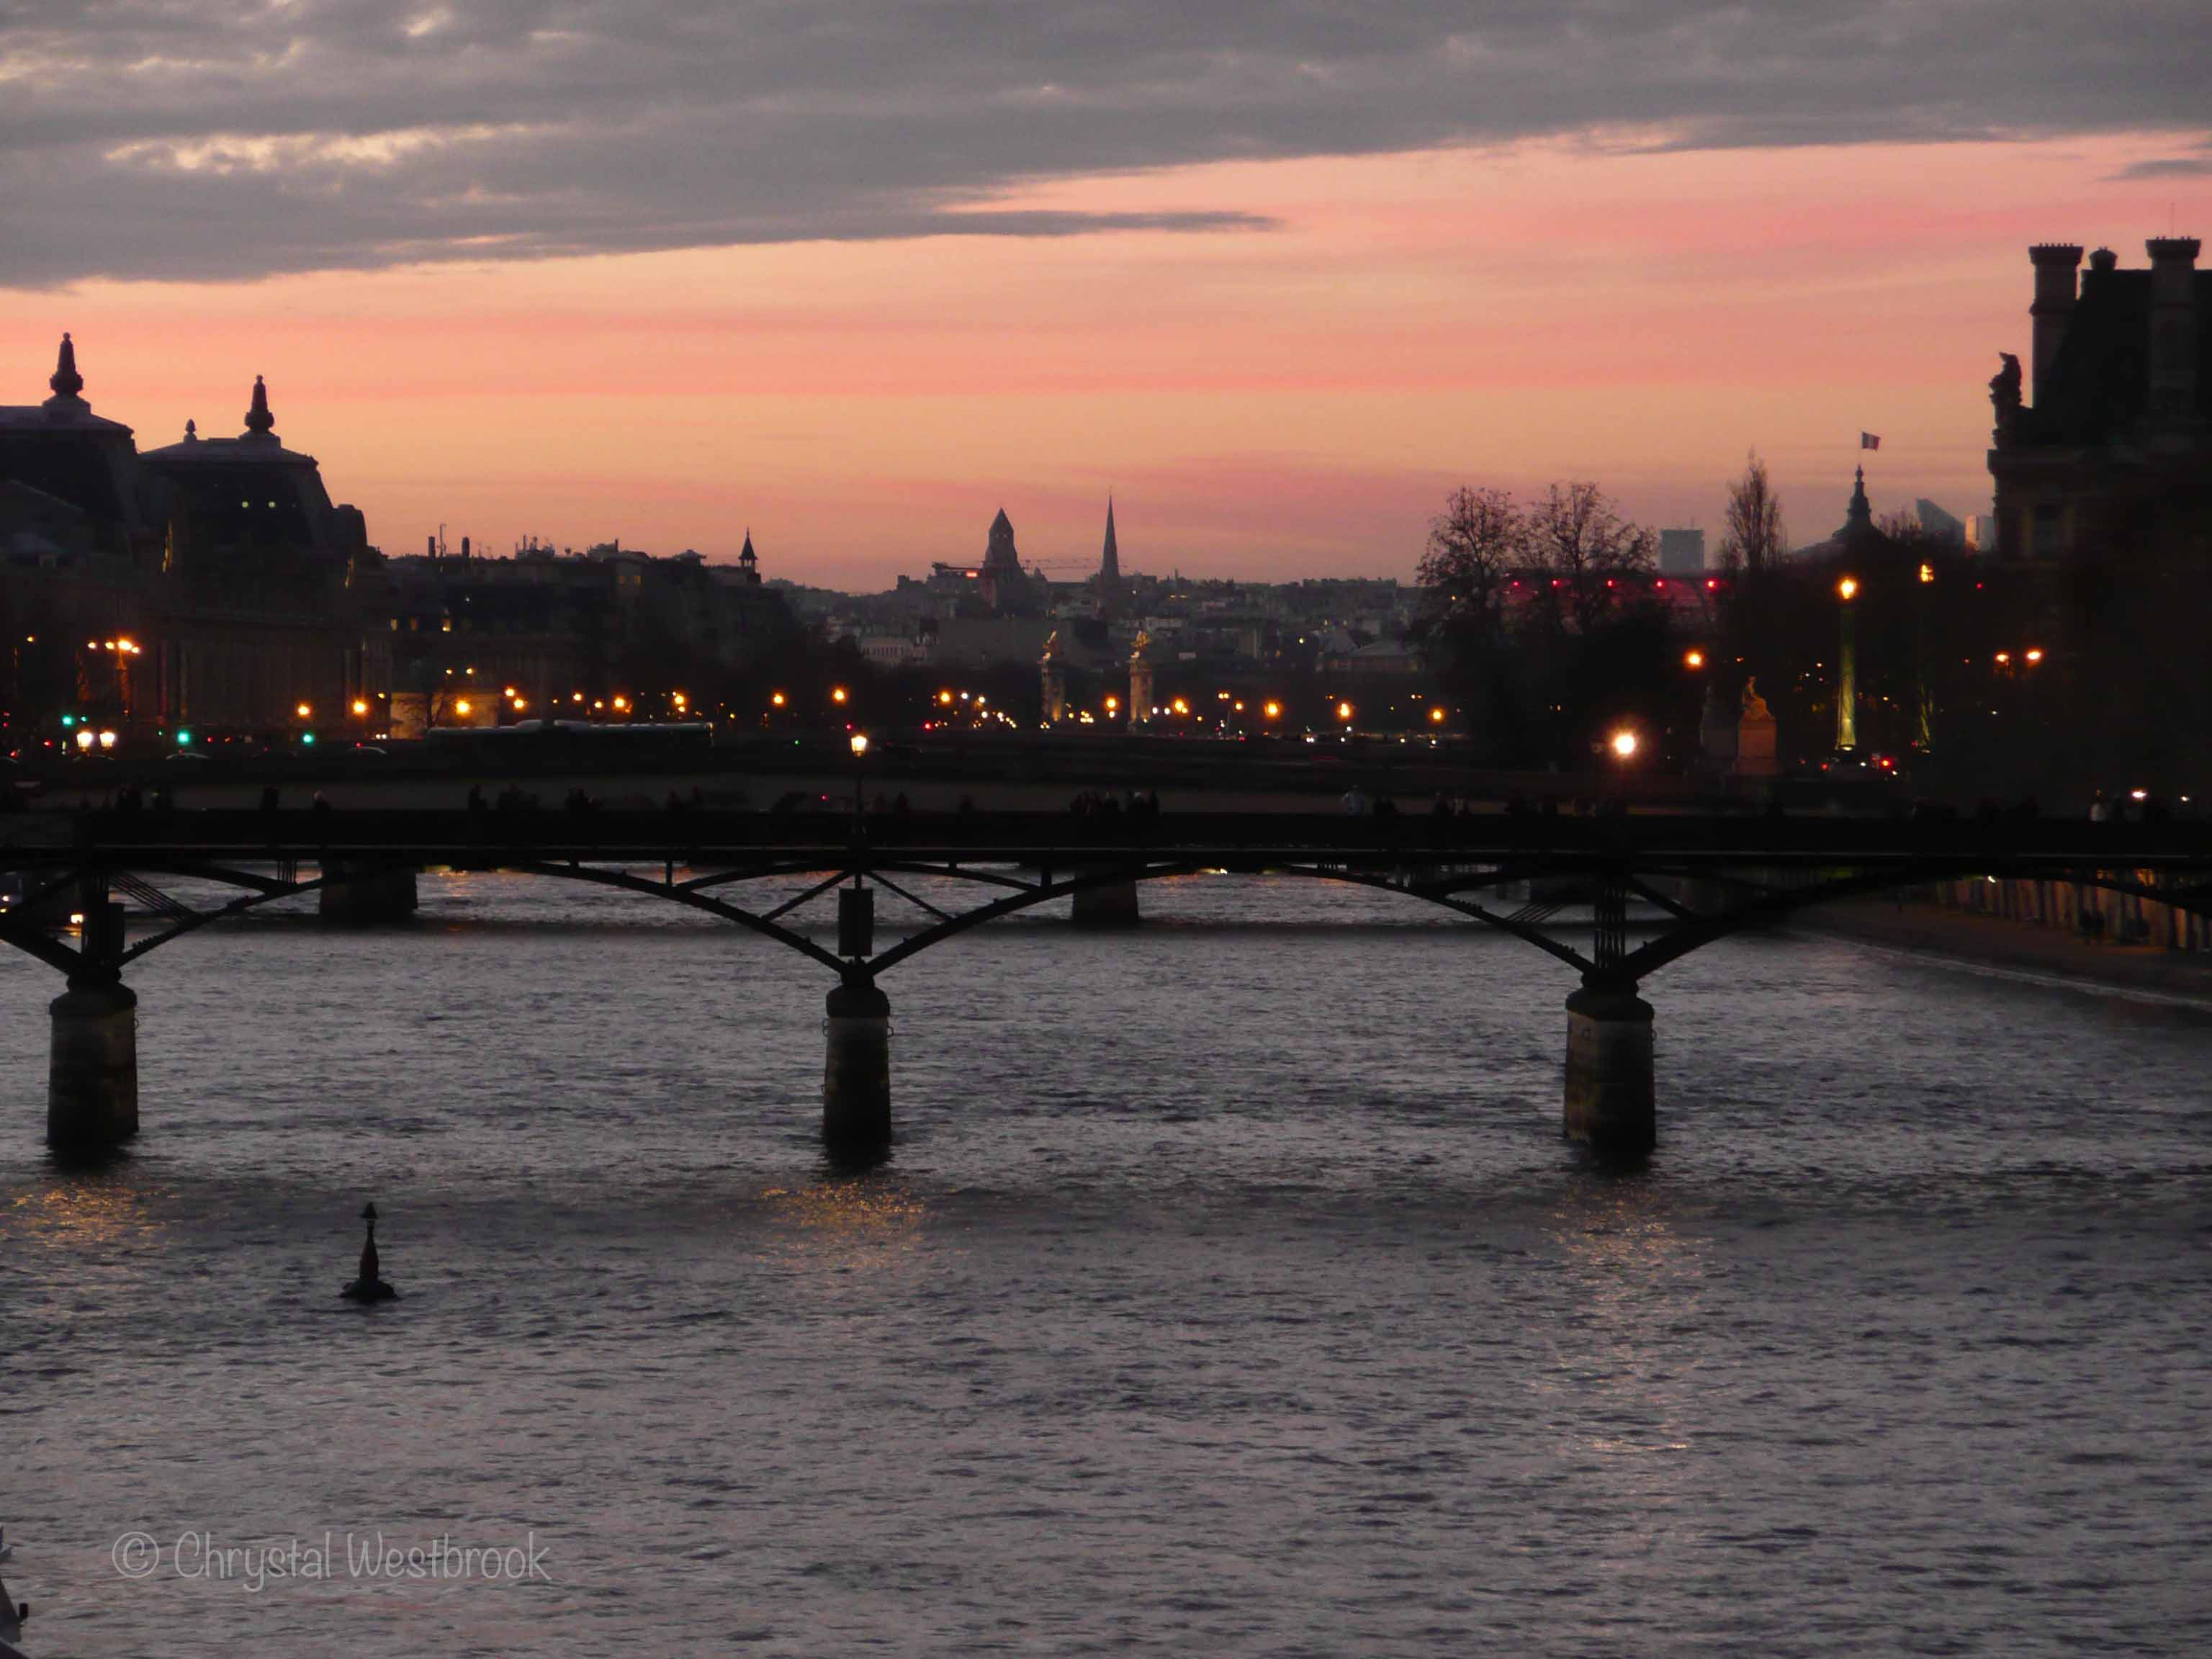 [IMAGE] Paris bridges at dusk